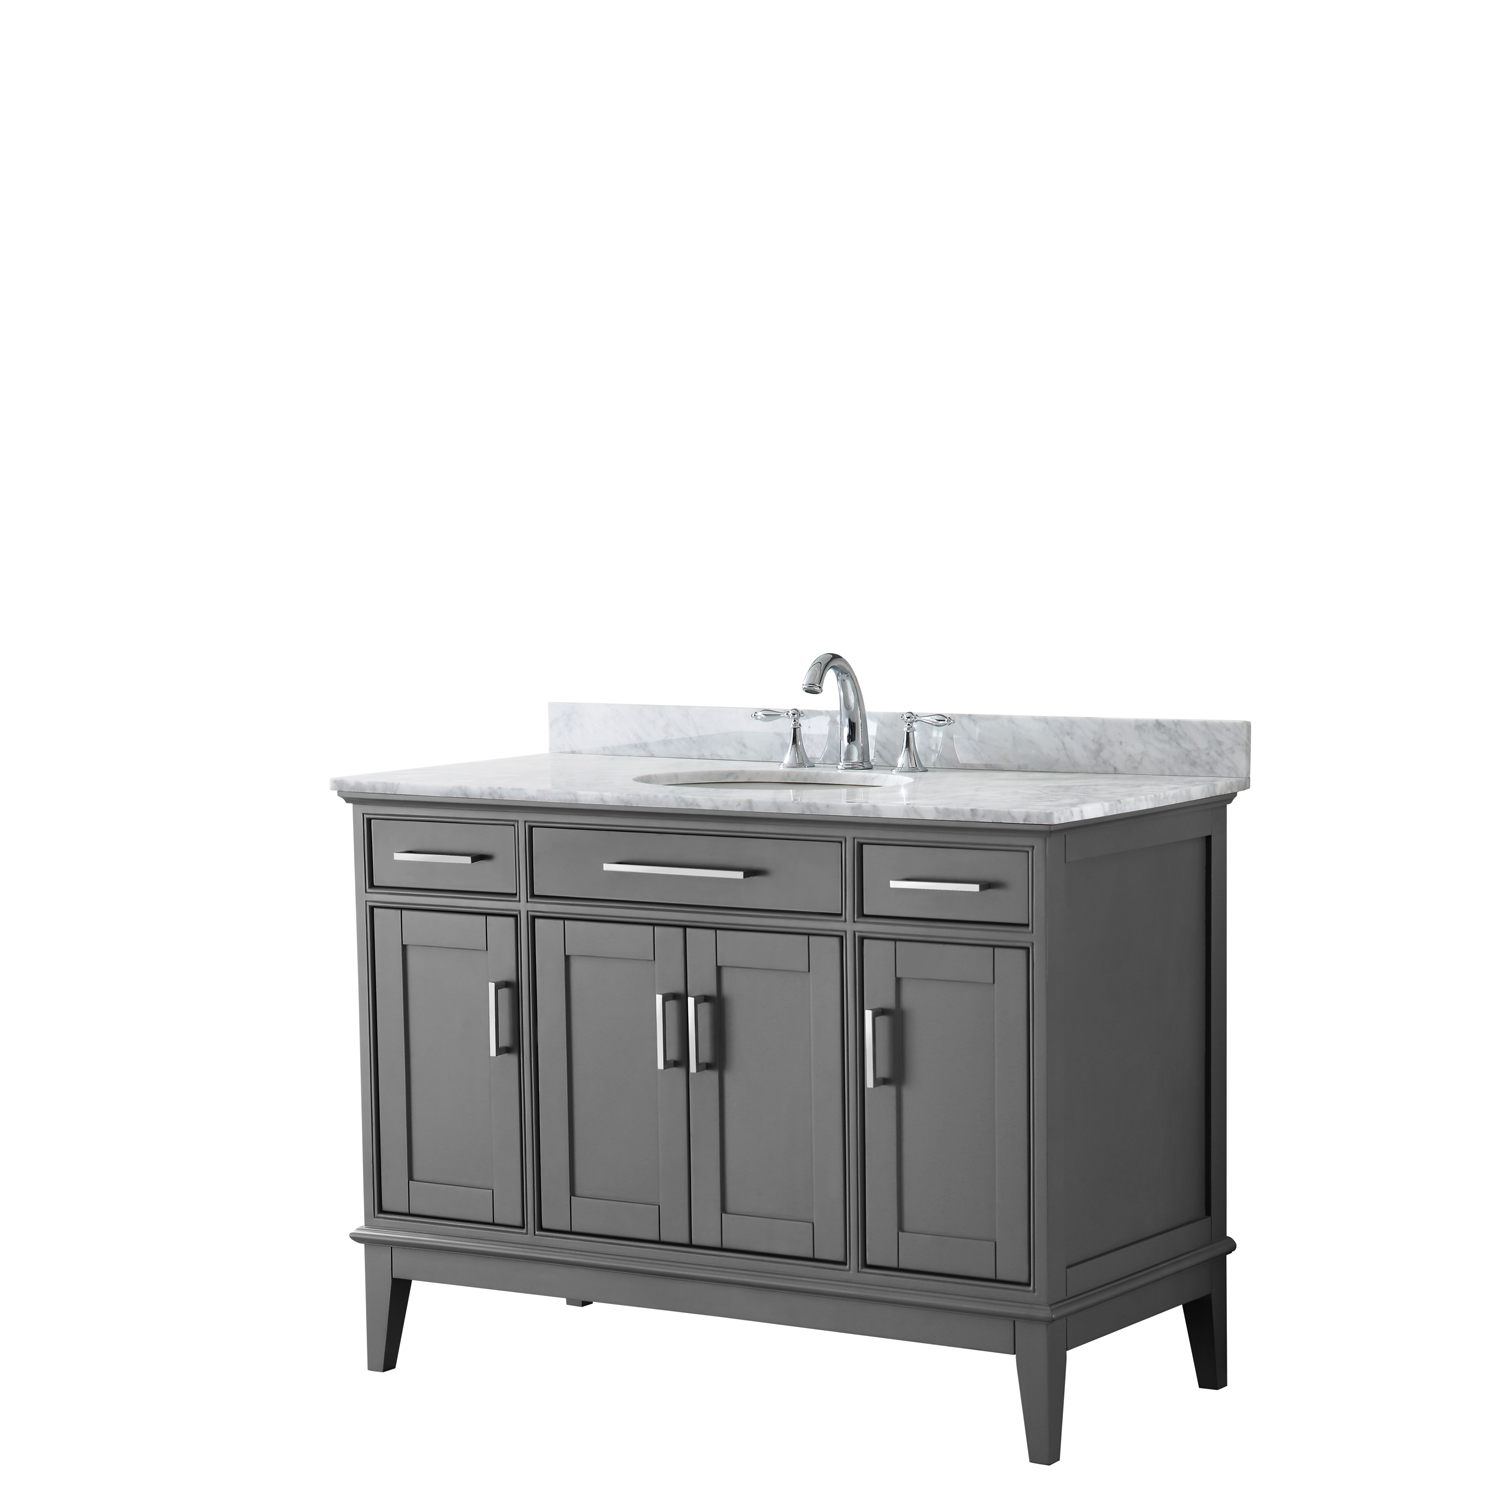 "Contemporary 48"" Single Bathroom Vanity in Dark Gray, White Carrara Marble Countertop with Undermount Sink, and Mirror Options"